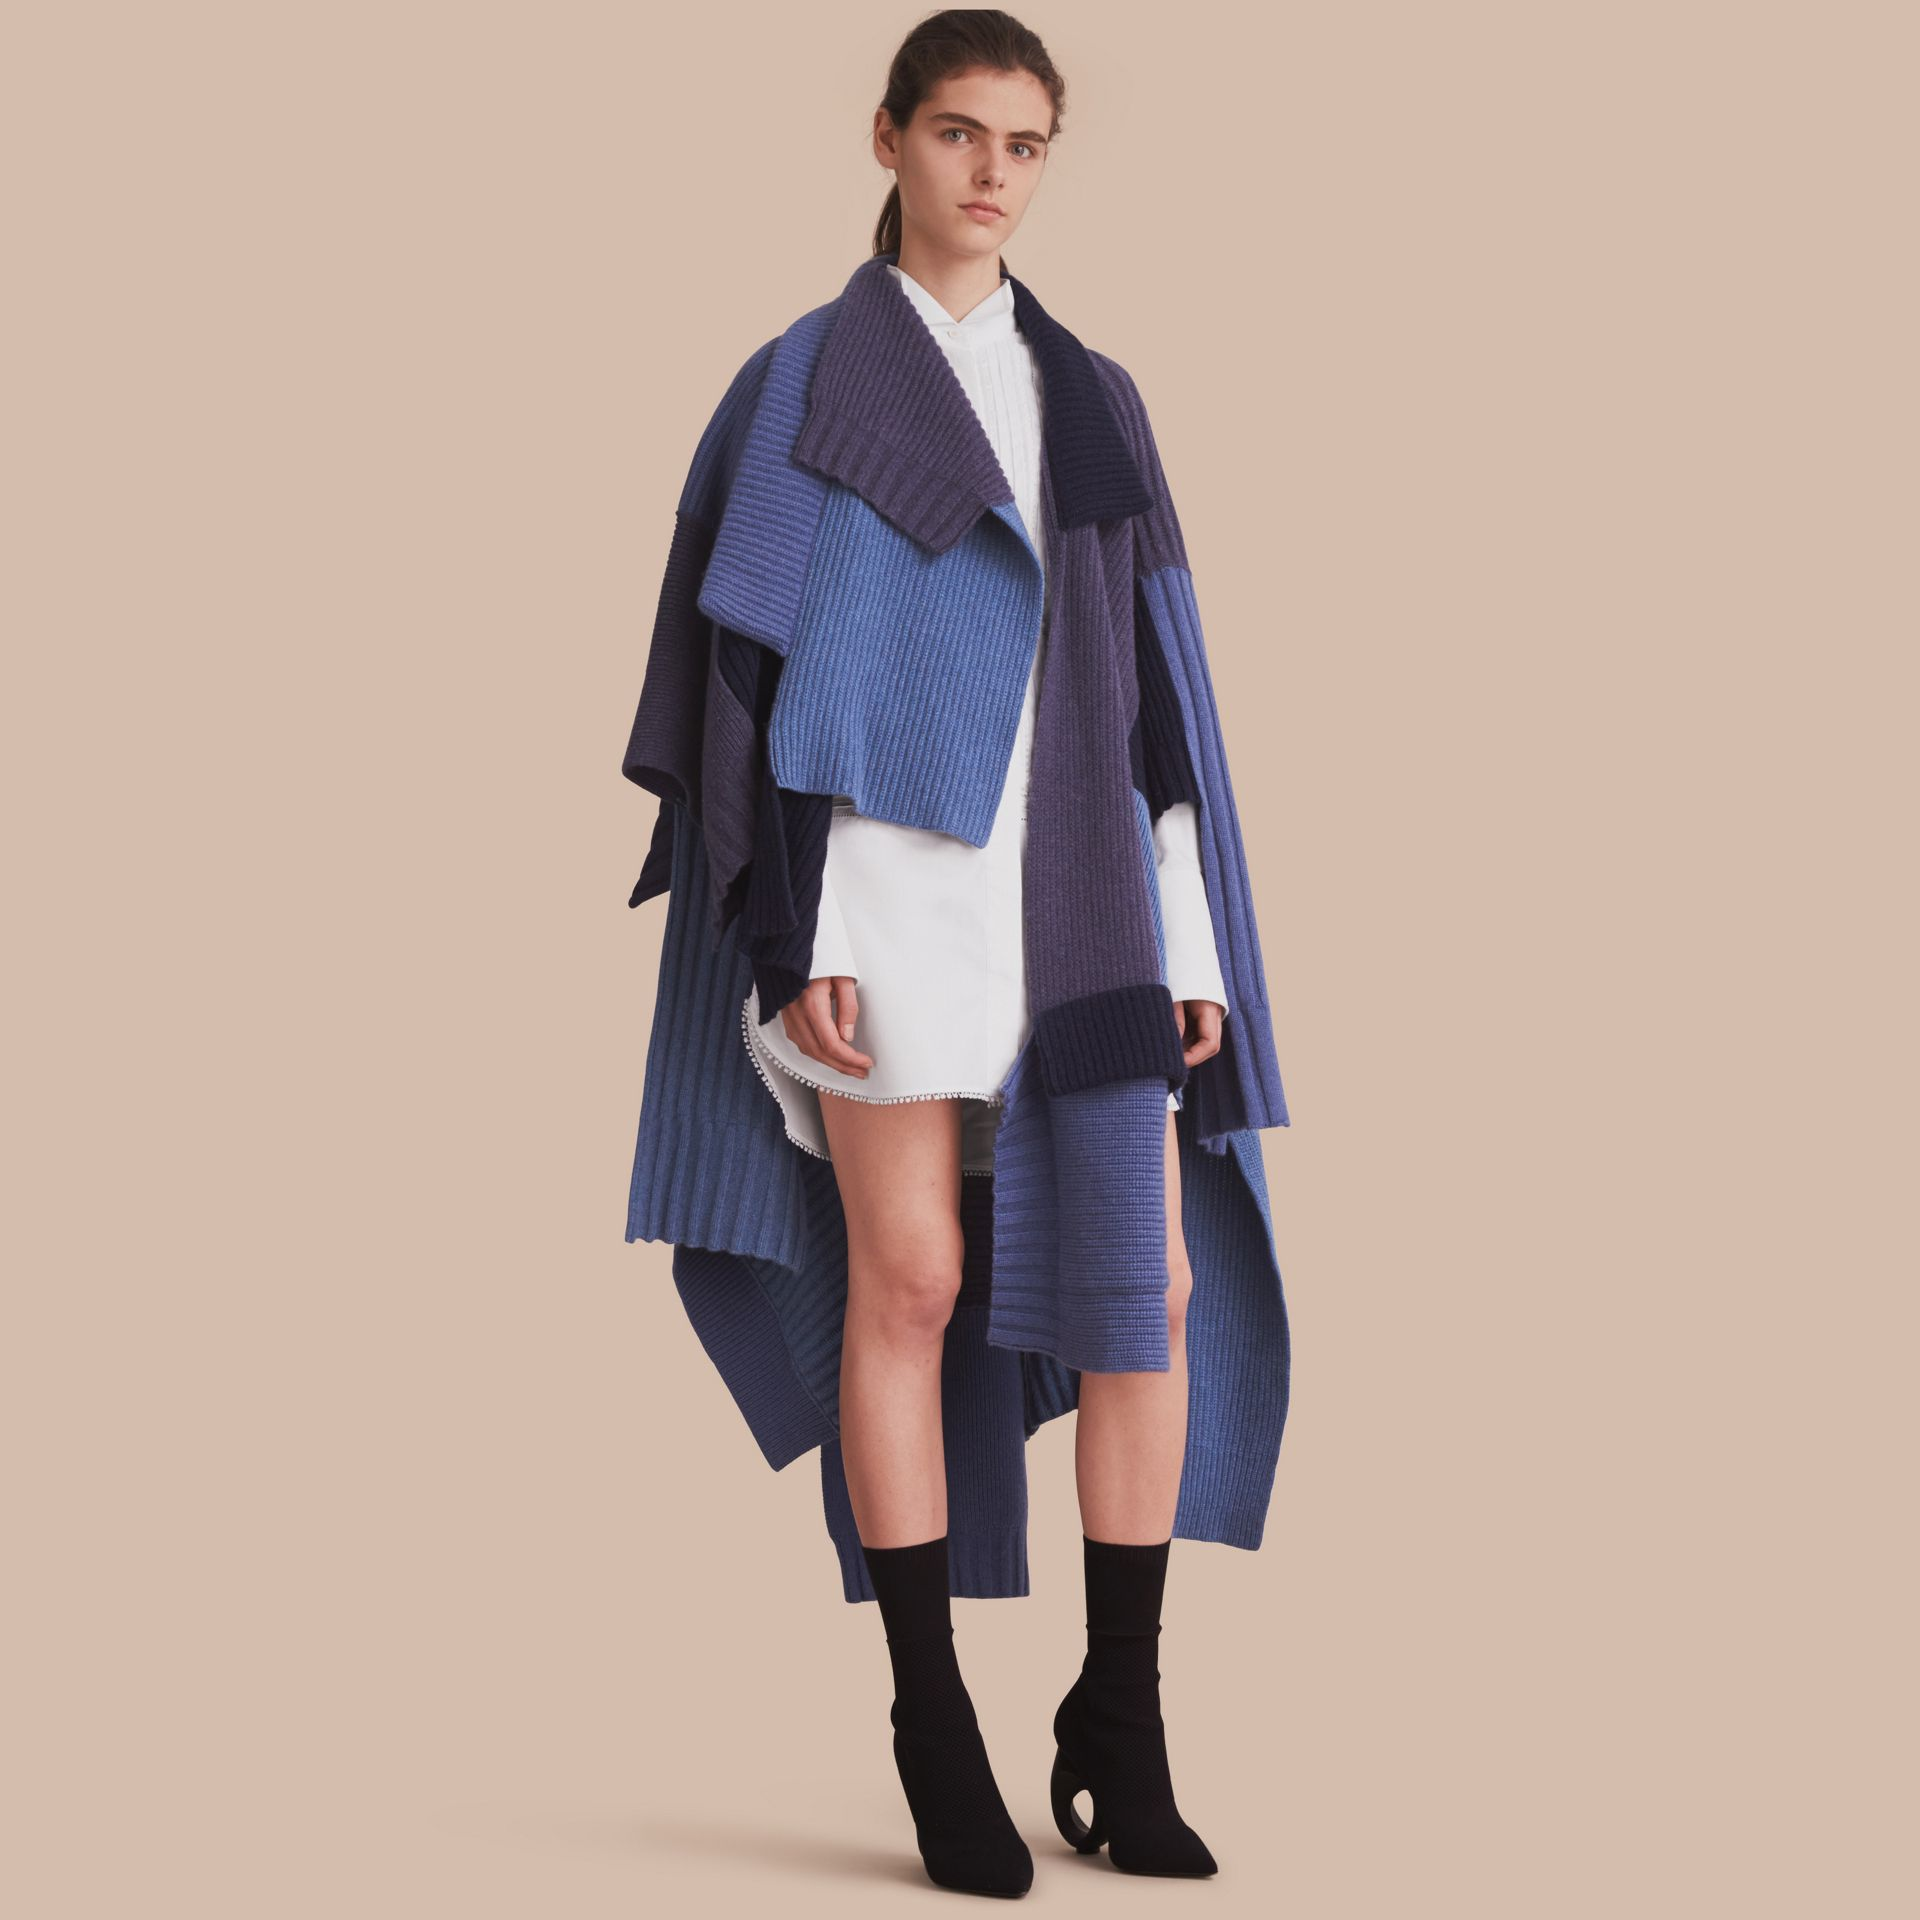 Wool Cashmere Patchwork Poncho in Carbon Blue - Women | Burberry United Kingdom - gallery image 1